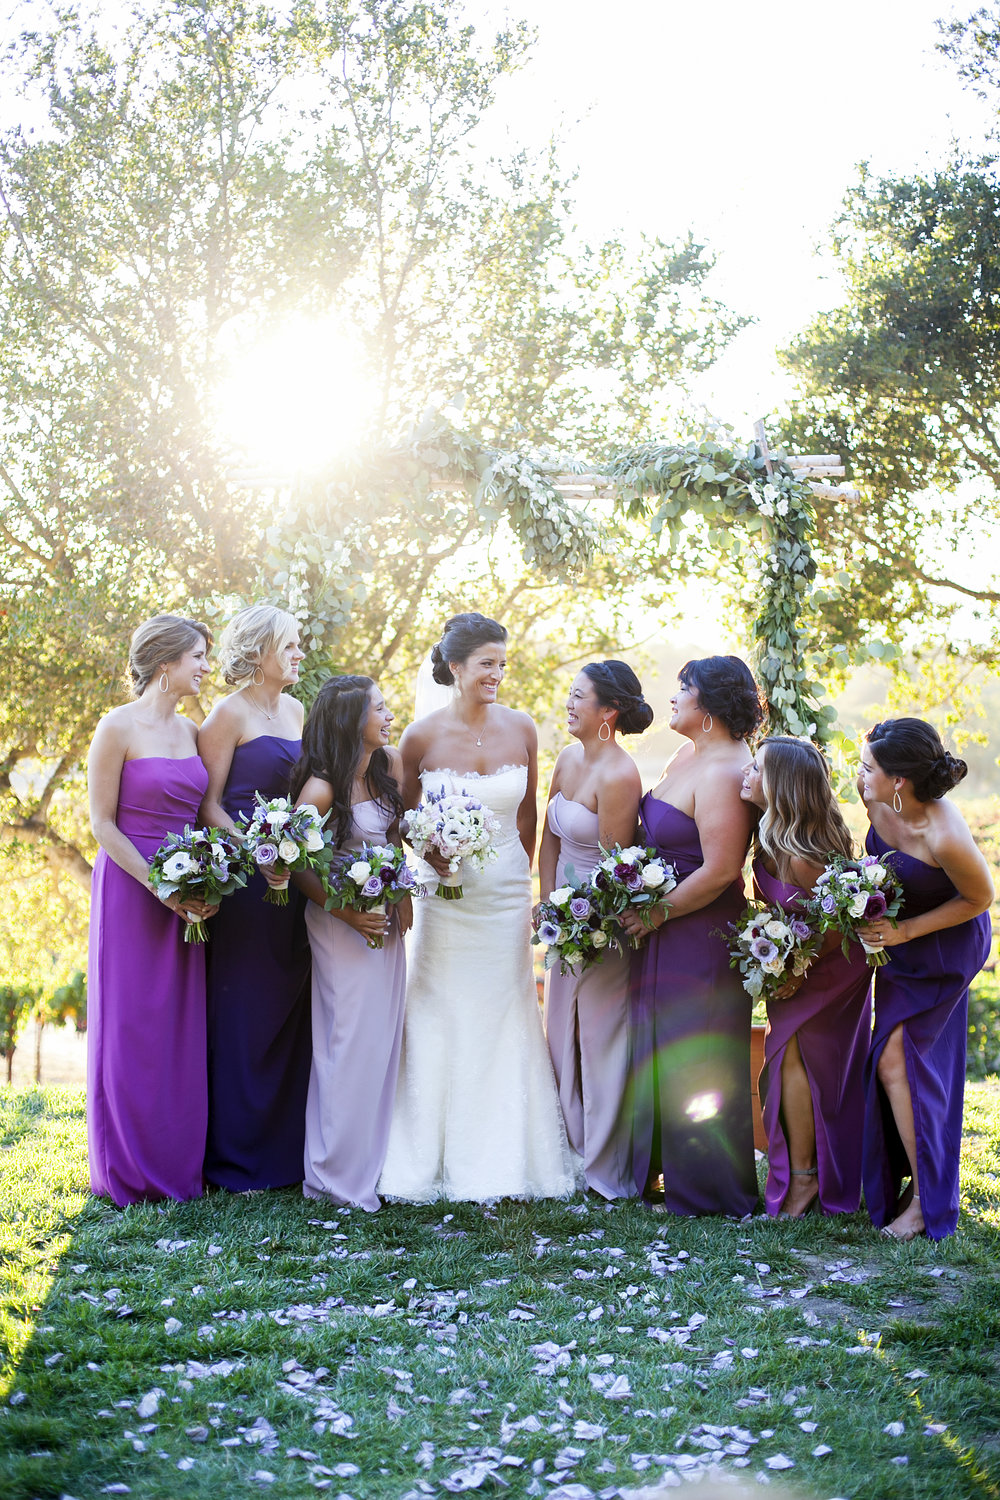 Gundlach Bundschu Napa Sonoma Wedding Photography Bridesmaids.jpg